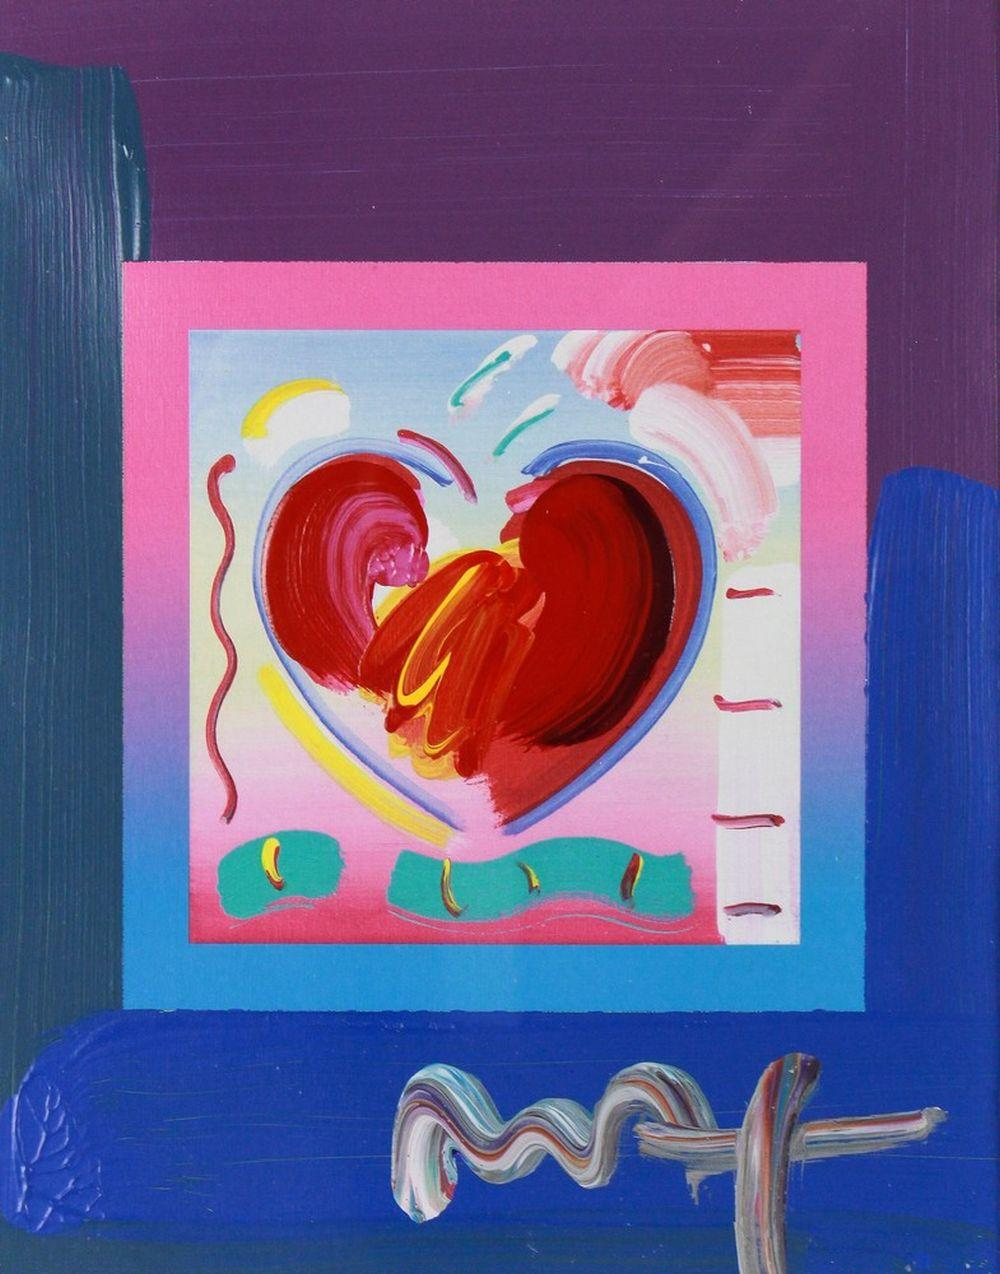 """Peter Max - """"Heart on Blends"""" 2010 - Signed"""